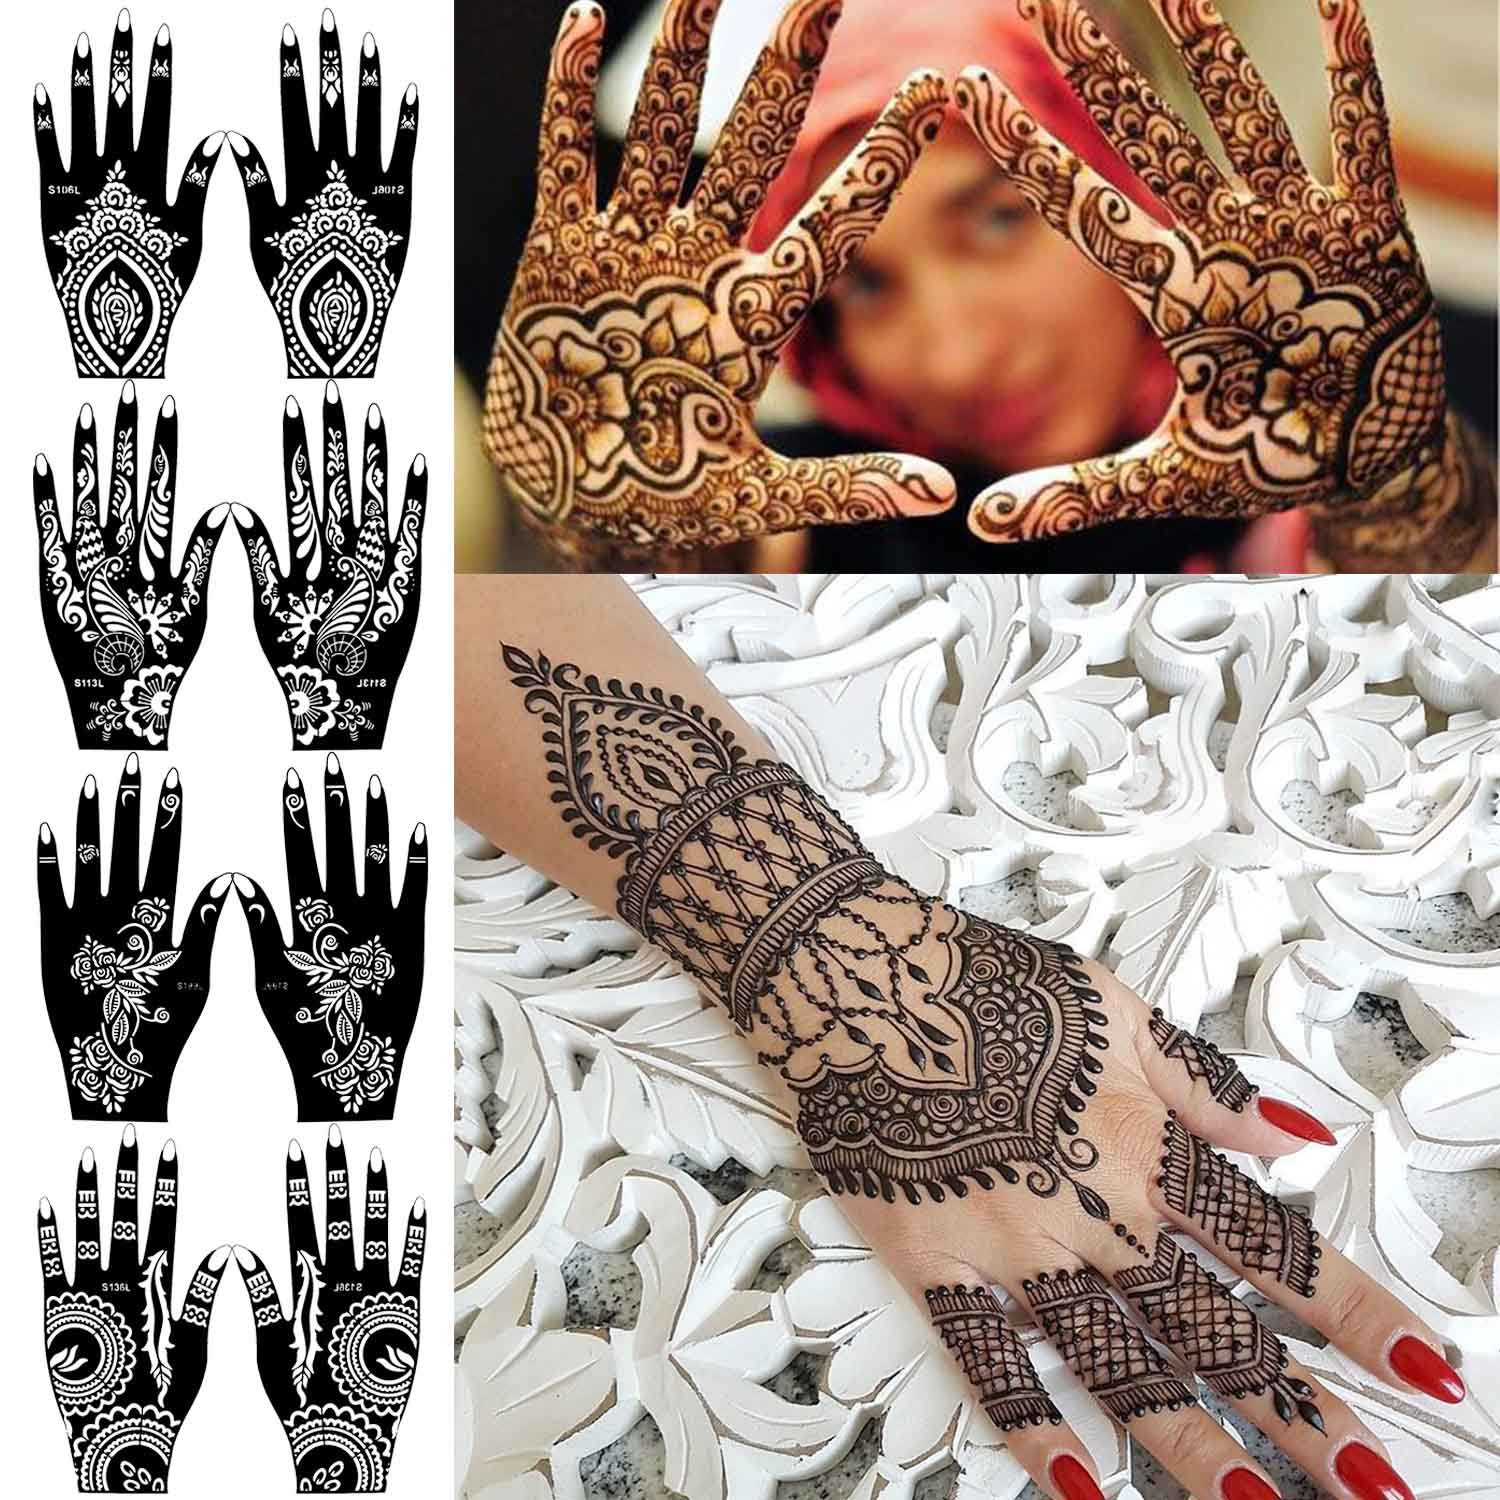 8 Sheets Hand - Temporary Indian Arabian Tattoo Reusable Stickers Indian Painting Stencil Tattoo Self-Adhesive Body Art Designs for Hands COKOHAPPY